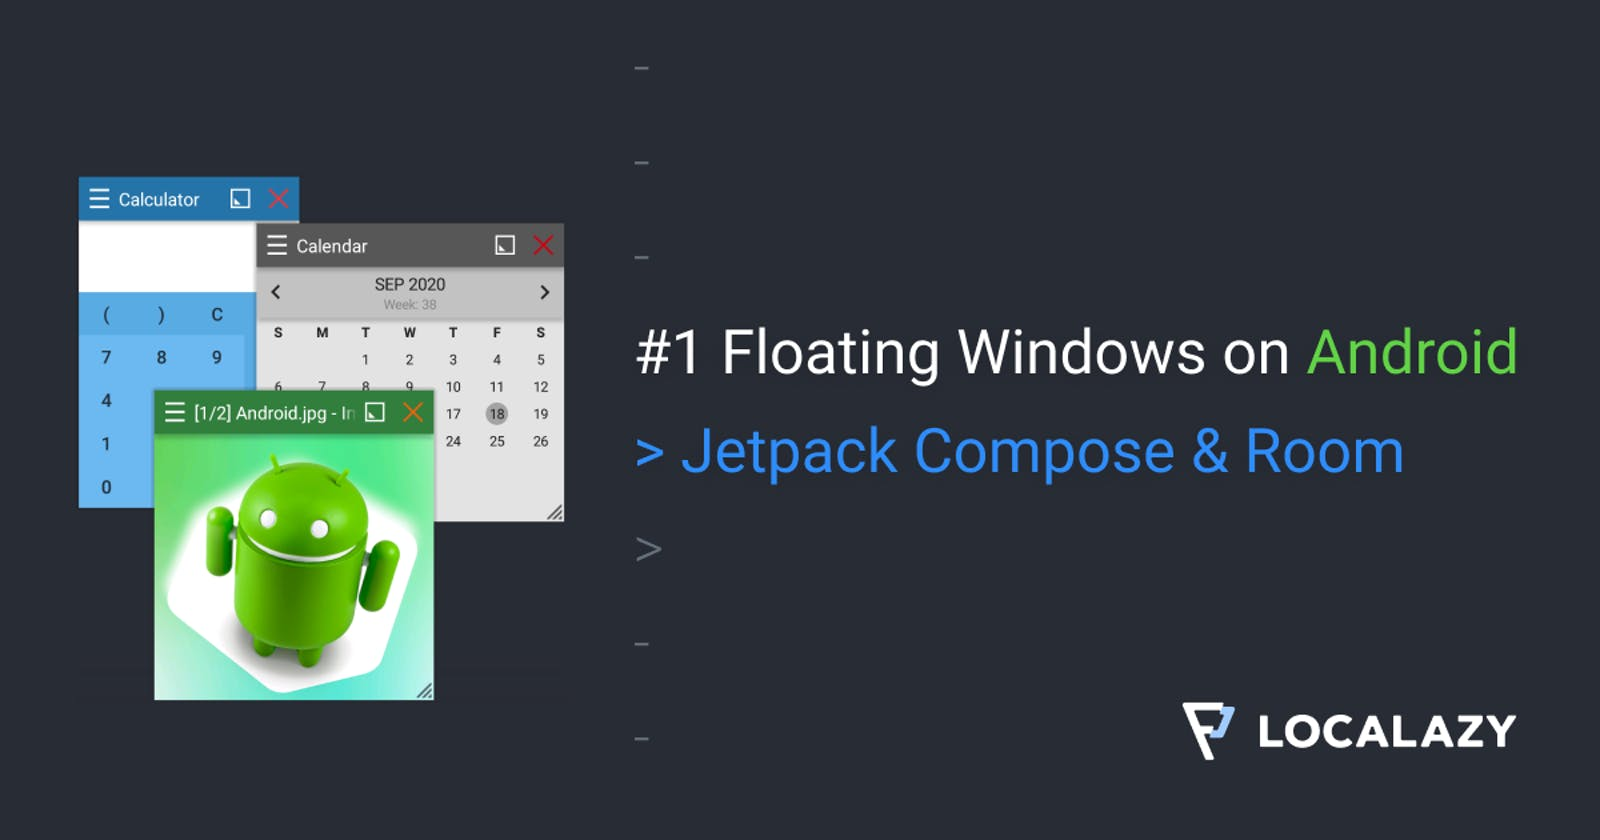 #1 Floating Windows on Android: Jetpack Compose & Room